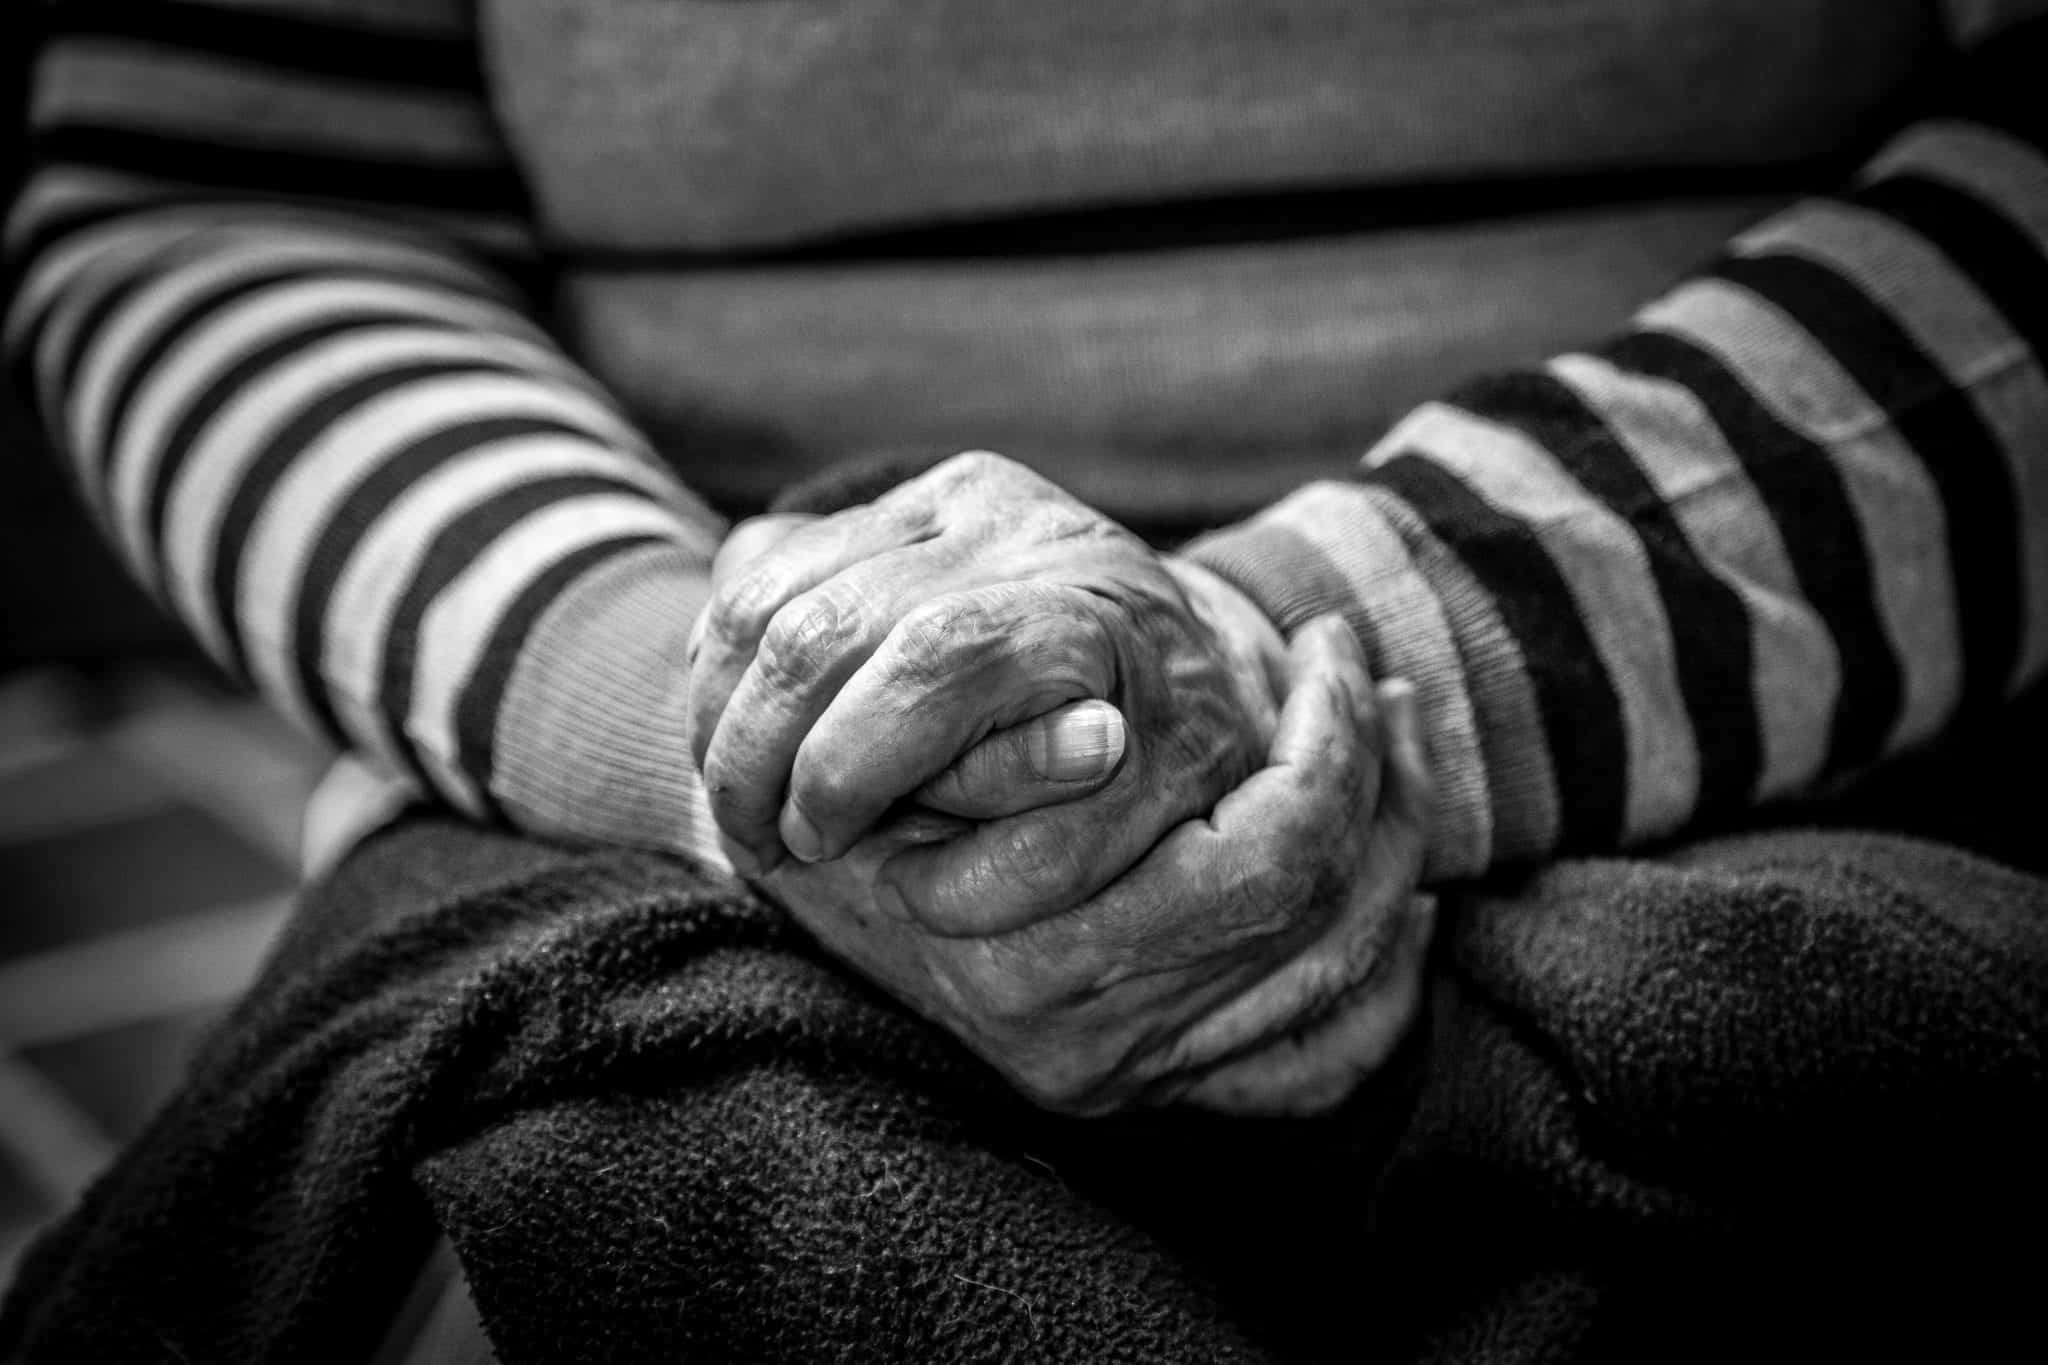 Assisted Living Home Administrator Sentenced in Abuse Case